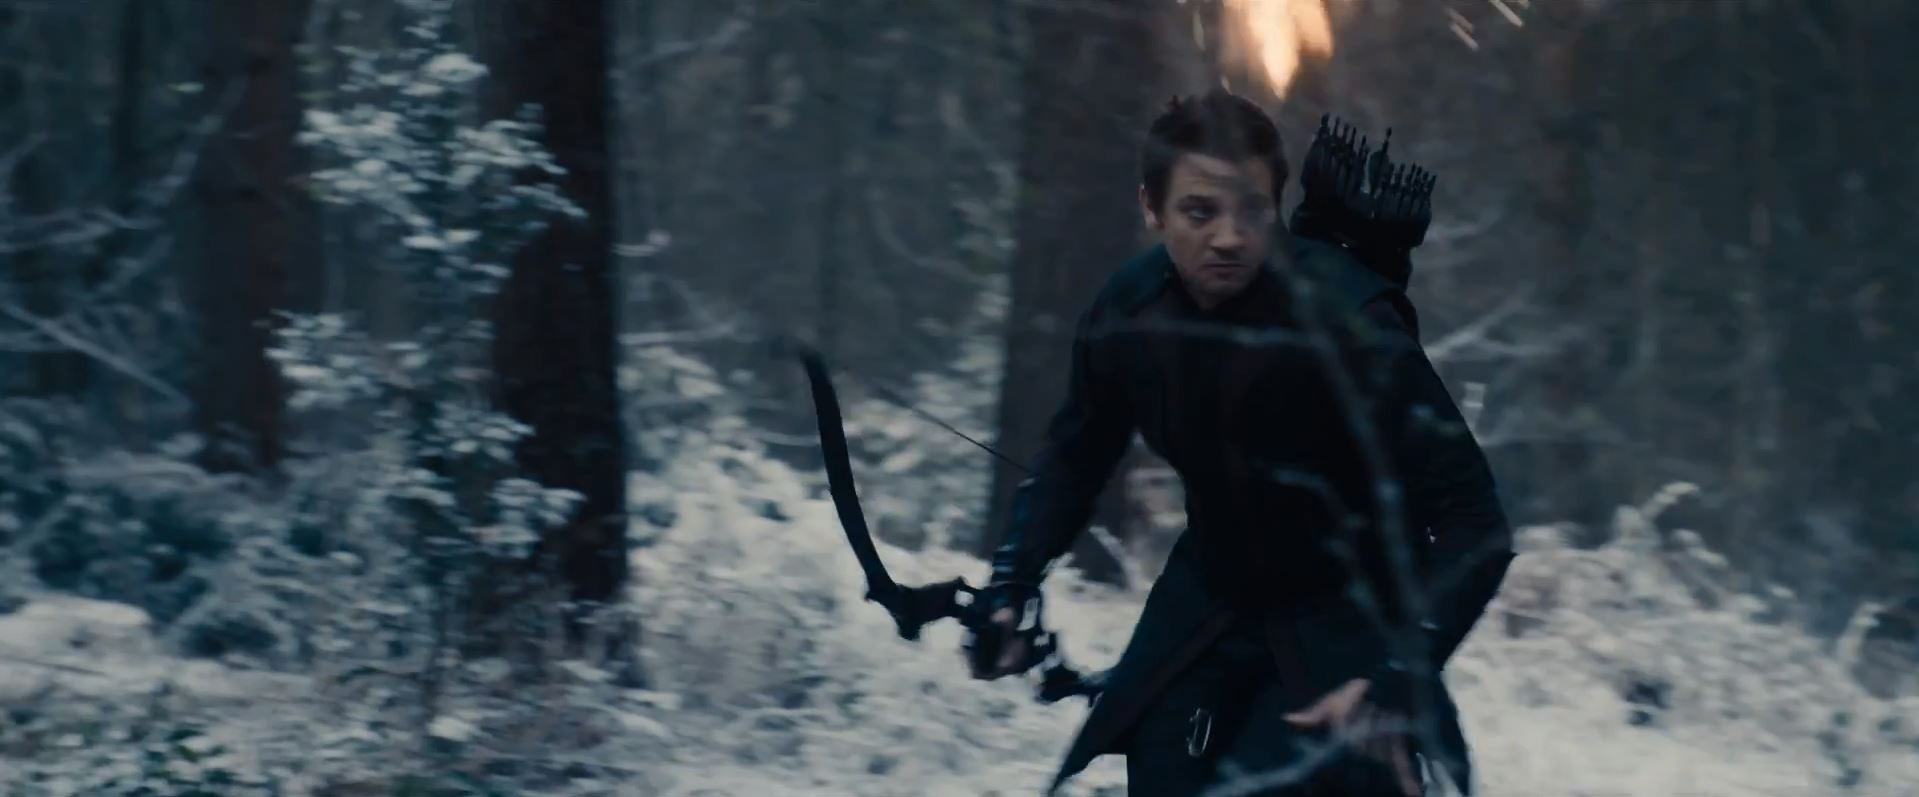 Avengers Age Of Ultron Trailer Released - Jeremy Renner as Hawkey being chased in woods